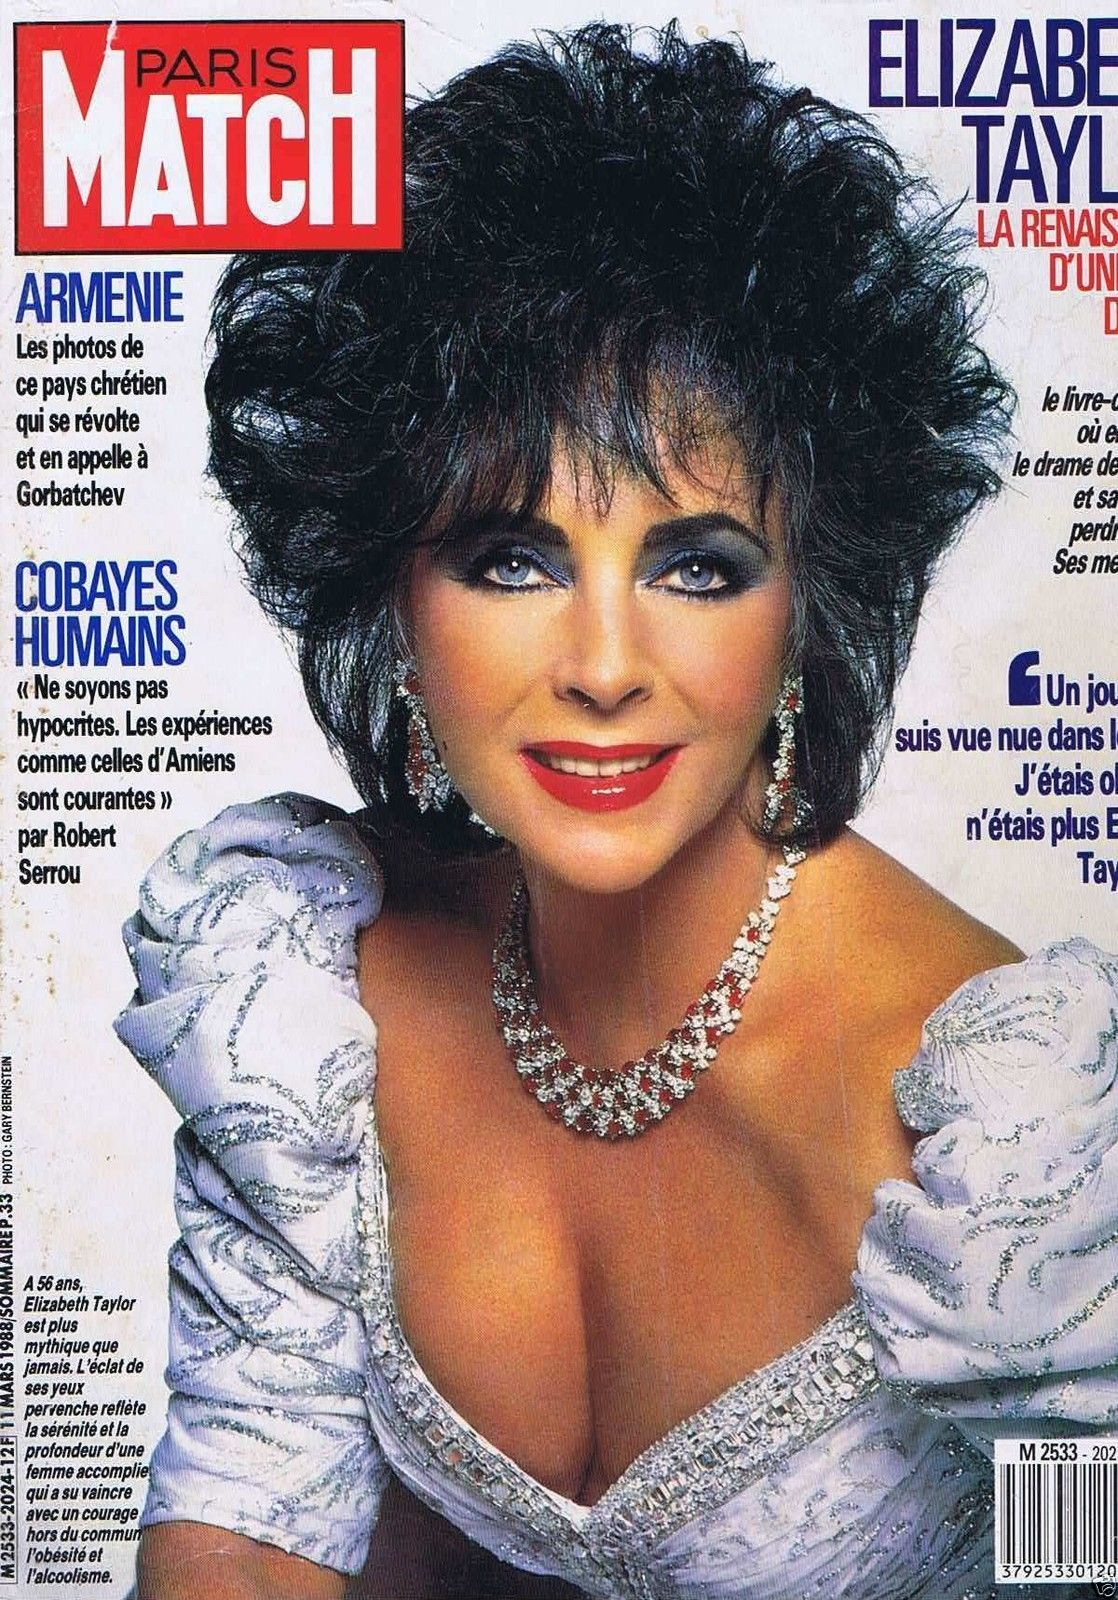 couverture magazine coverage paris match 11 03 88 elizabeth taylor paris match pinterest. Black Bedroom Furniture Sets. Home Design Ideas